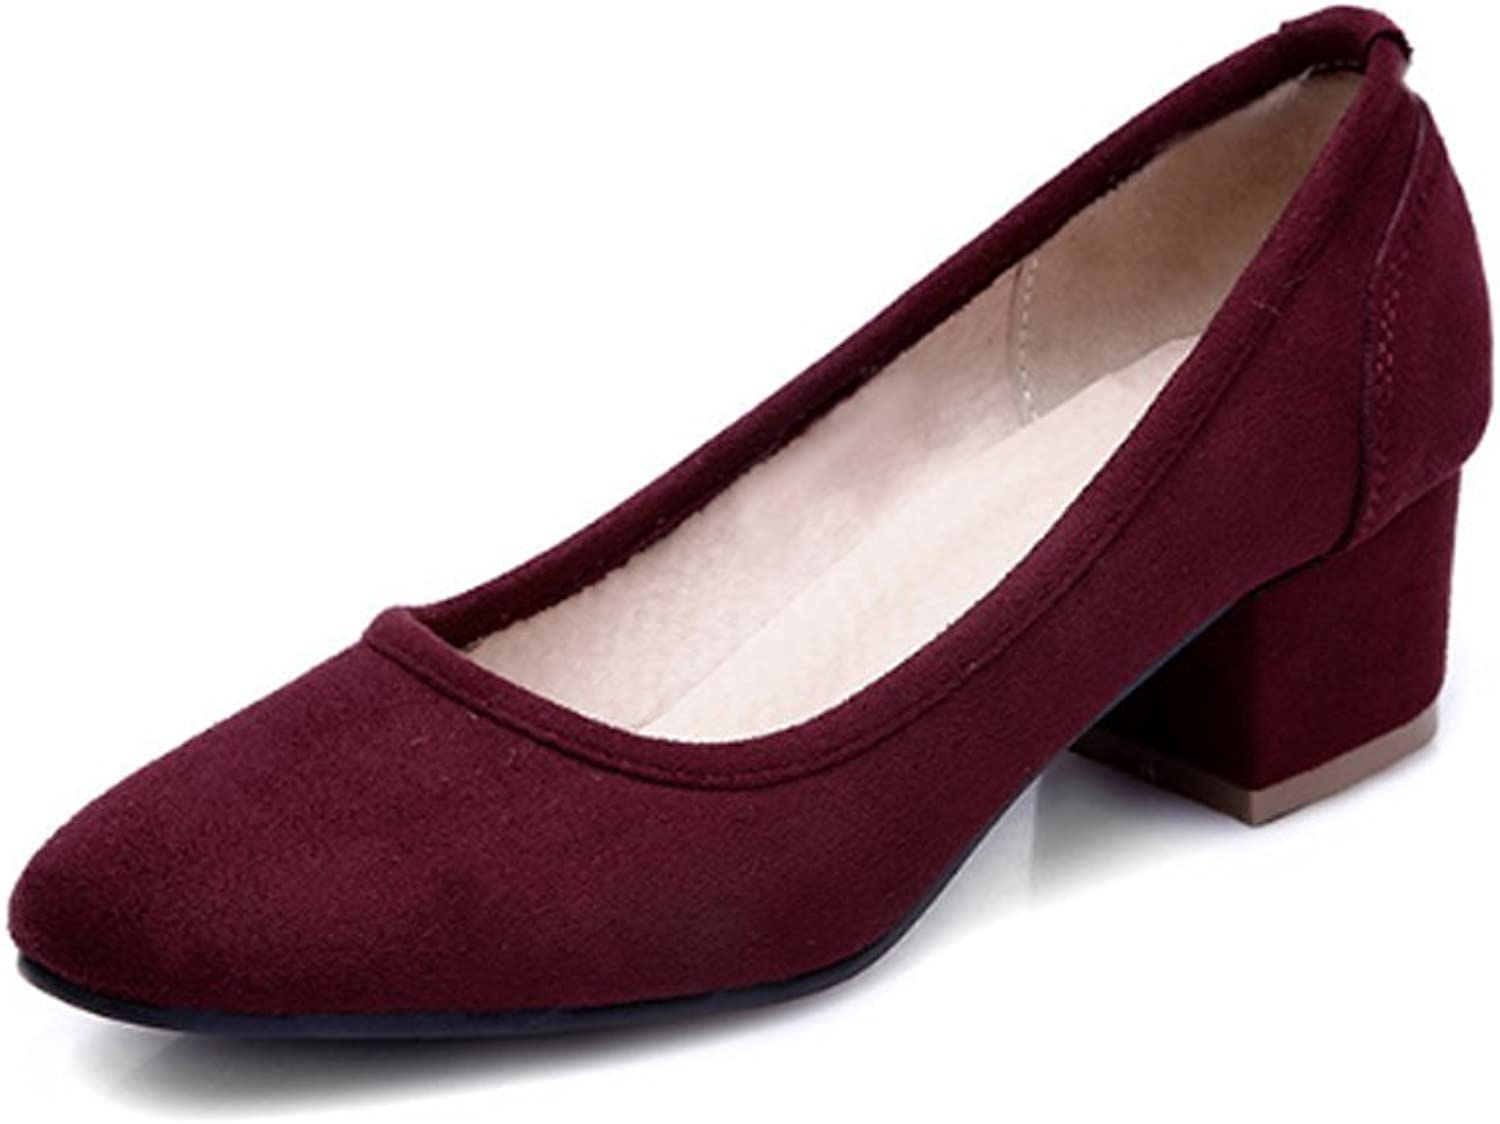 Lucksender Womens Square Toe Chunky Heel Comfort Simple Style Pumps